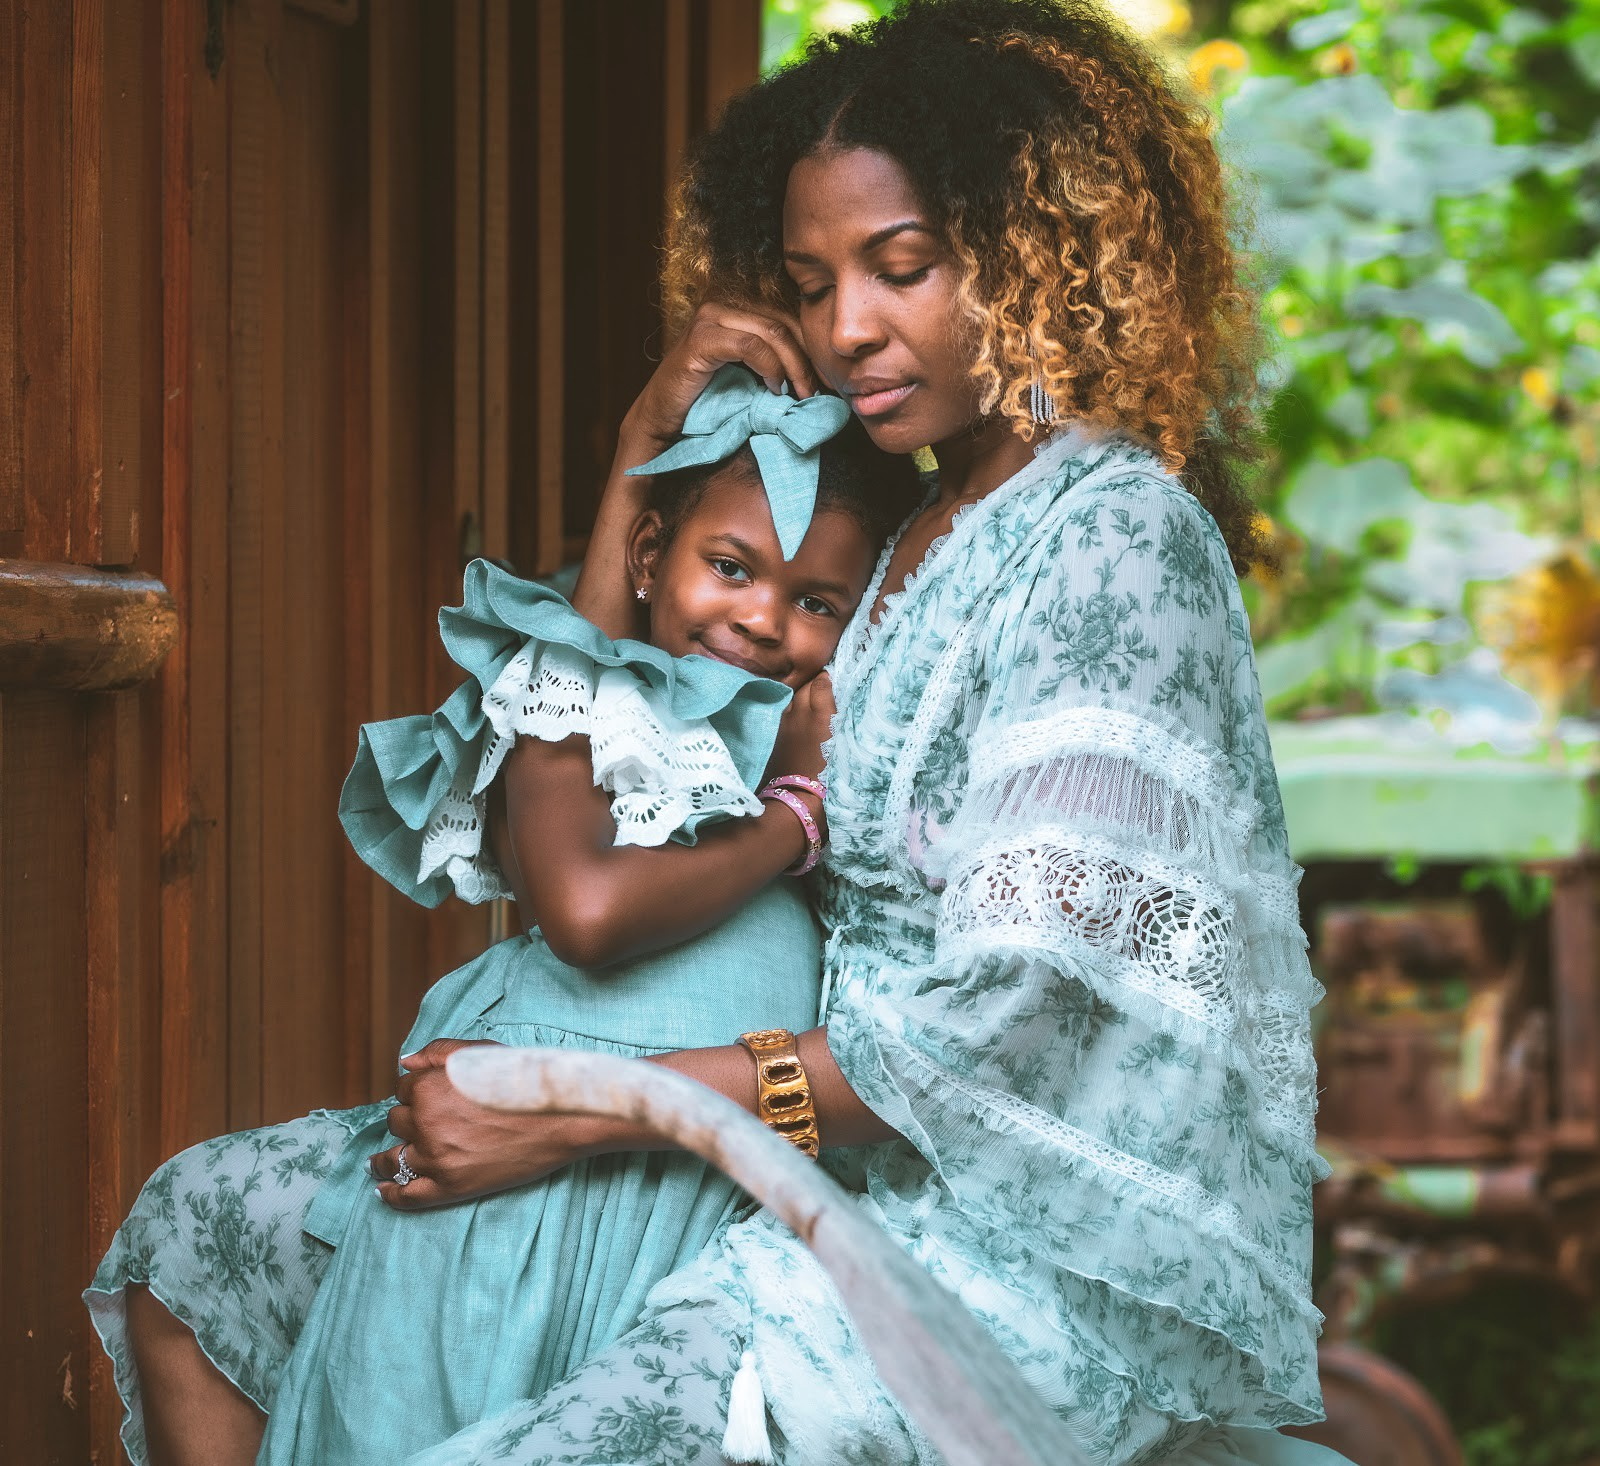 Mother with young daughter with light blue dresses in matching colors